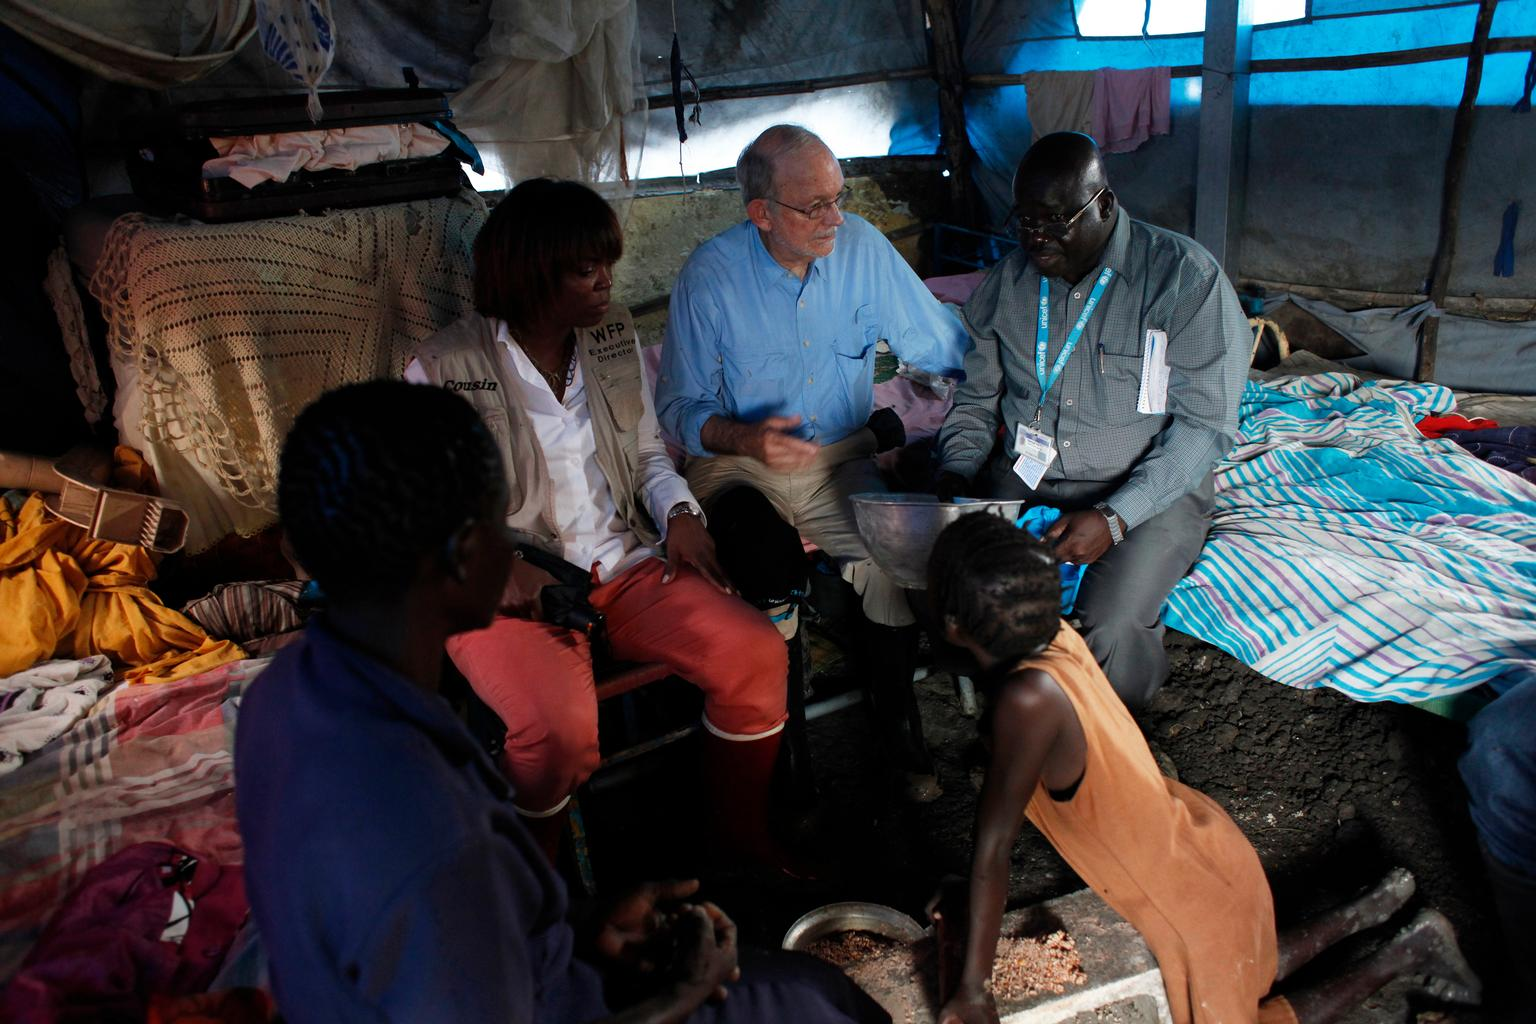 (Background, left to right) WFP's Executive Director Ertharin Cousin, UNICEF Executive Director Anthony Lake and a UNICEF worker meet with a woman and girl in their temporary shelter, at a UN camp in Malakal. © UNICEF/NYHQ2014-0985/WFP Campeanu